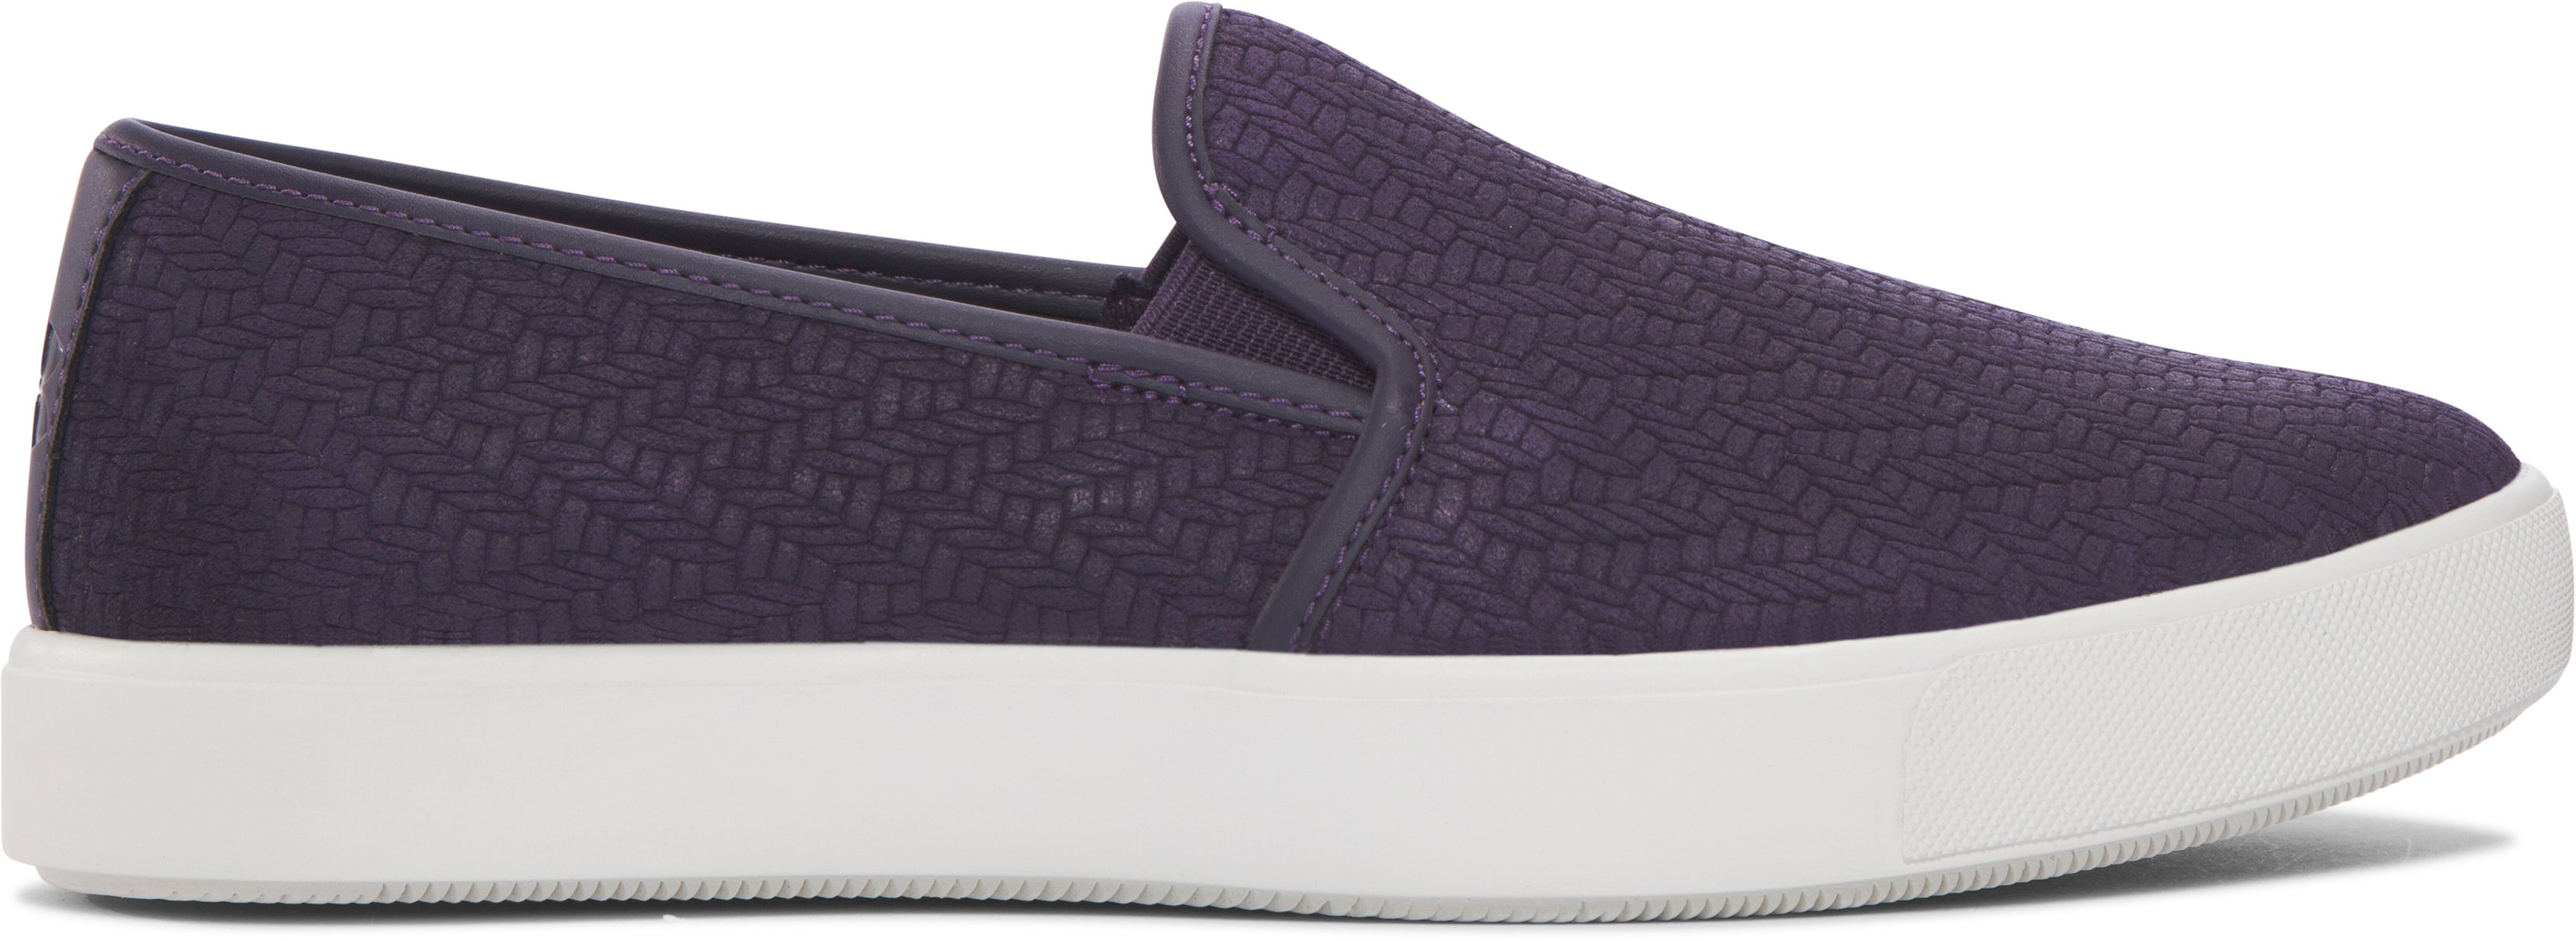 Women's UA DJ Suede Lifestyle Shoes, IMPERIAL PURPLE